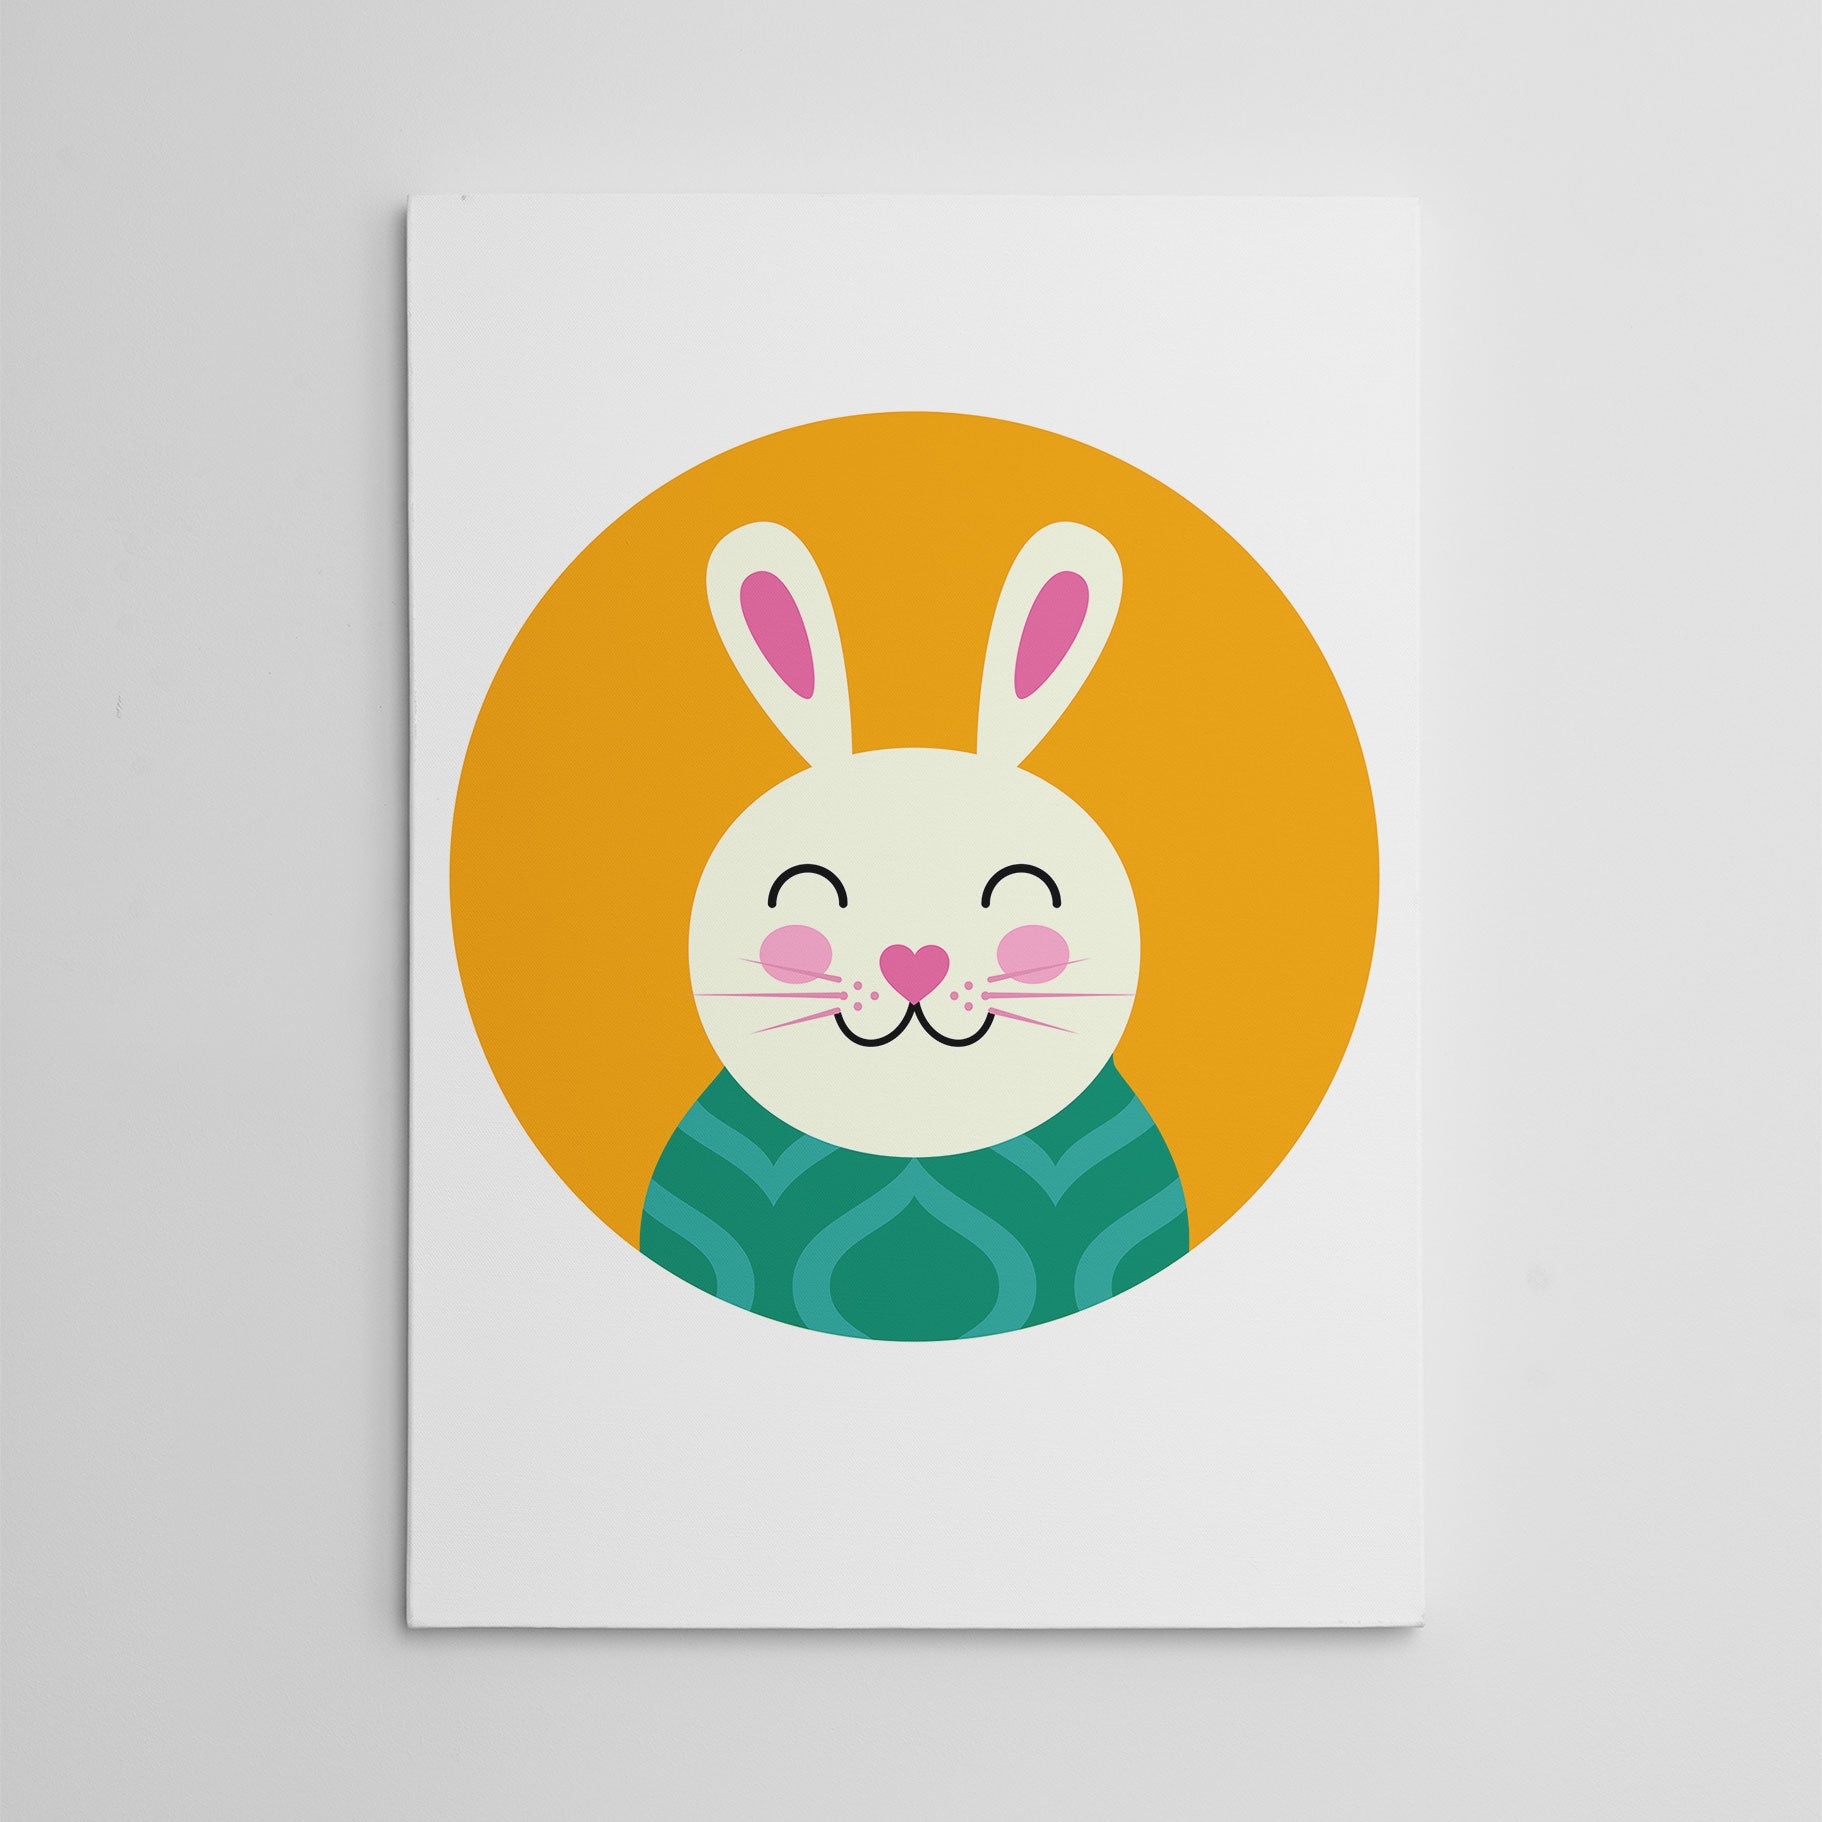 Nursery canvas print with a smiley rabbit in an orange circle.